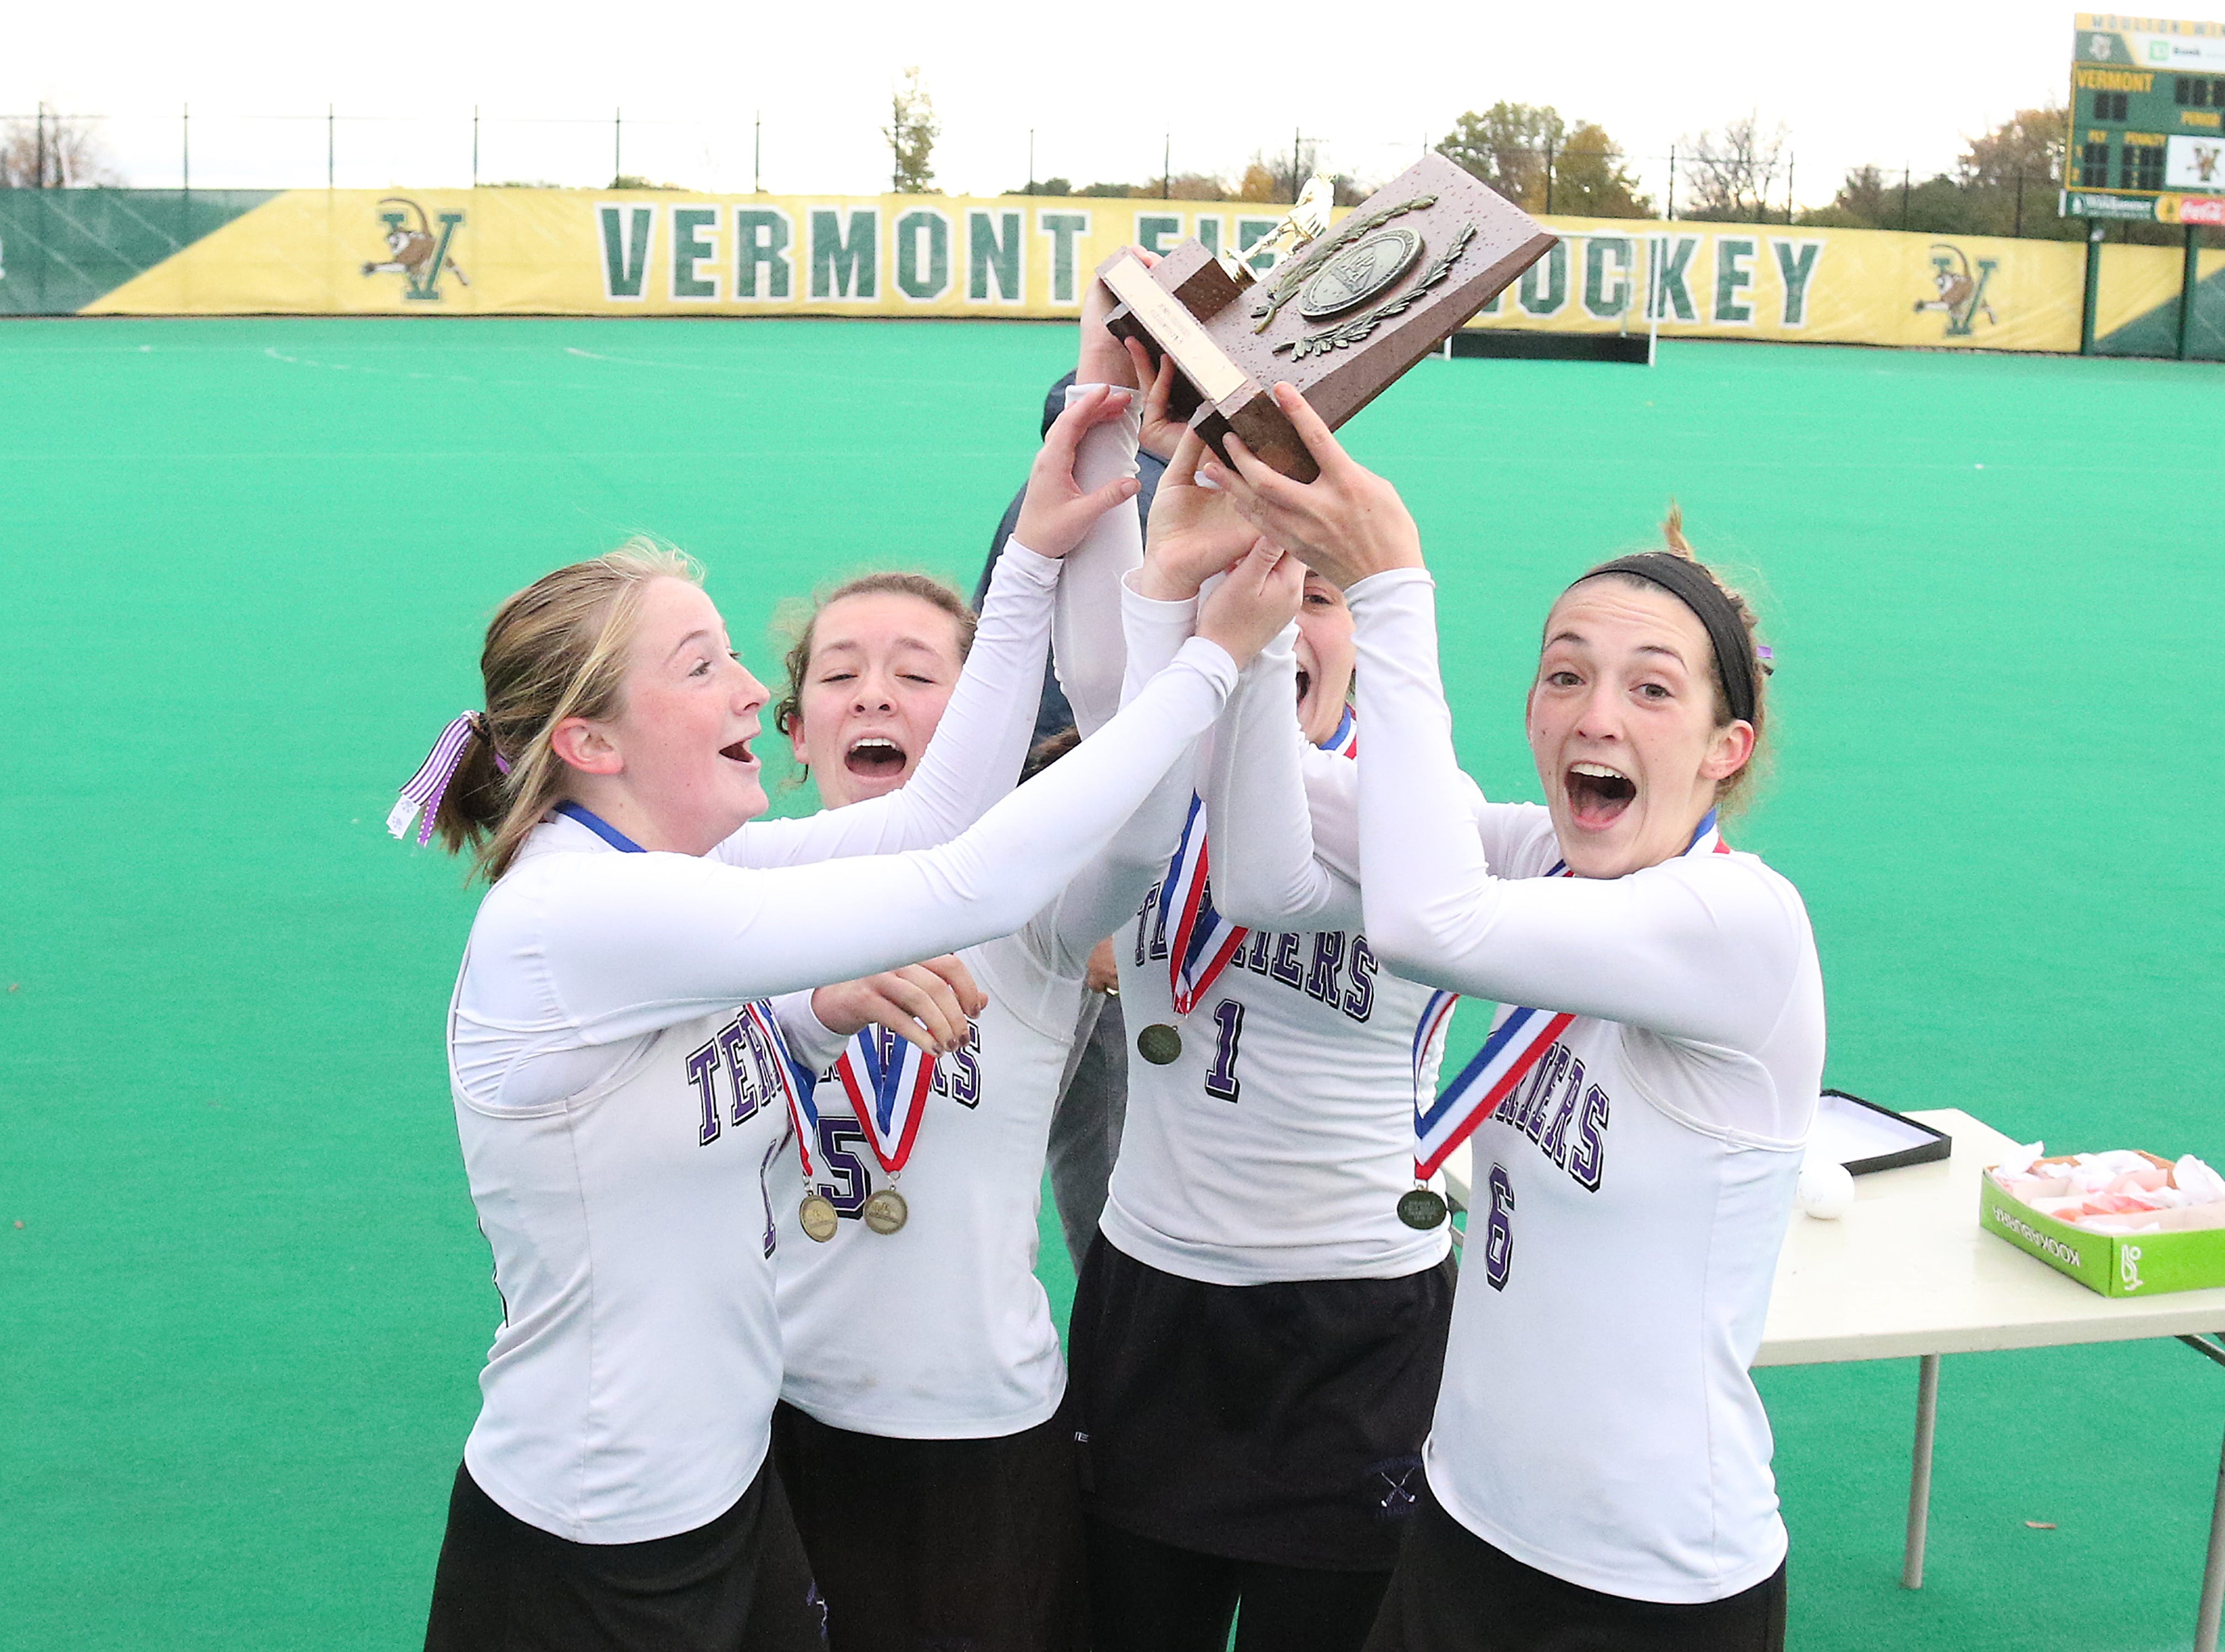 The Bellows Falls seniors bring the D1 trophy home to their teamates after defeating South Burlington 2-0 on Saturday at UVM.